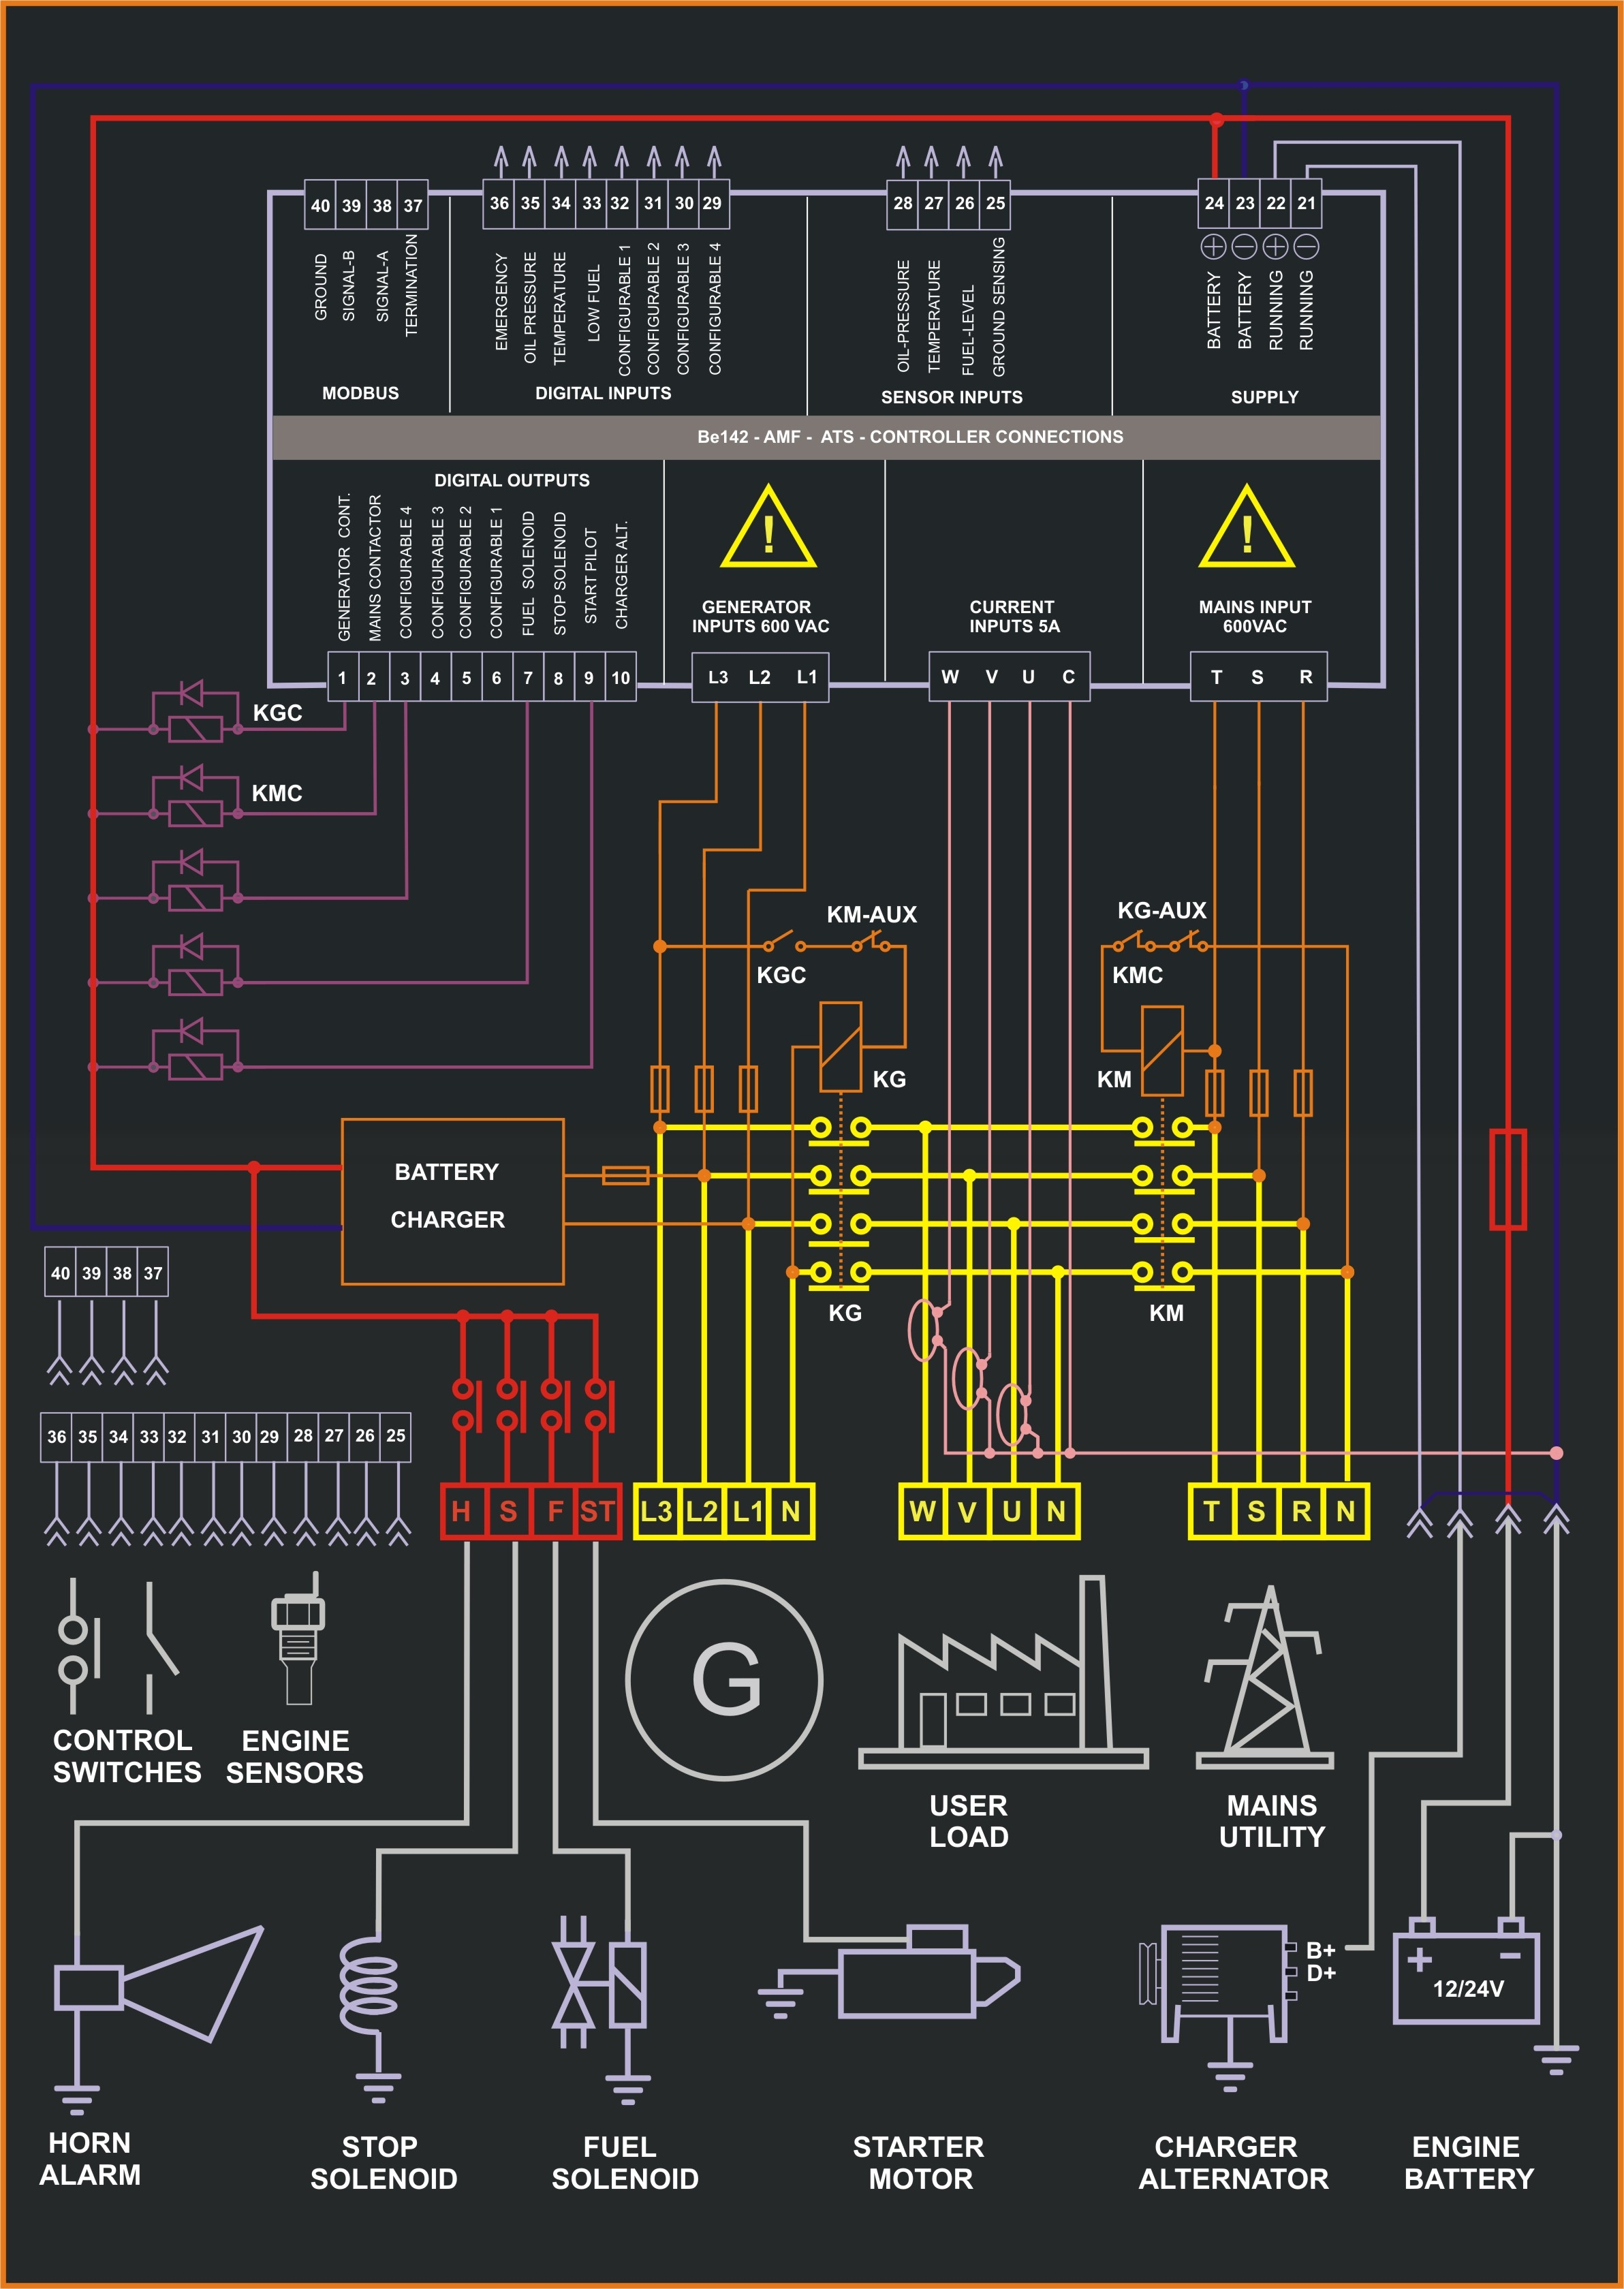 ... sensor lighting control system. Control panel circuit diagram